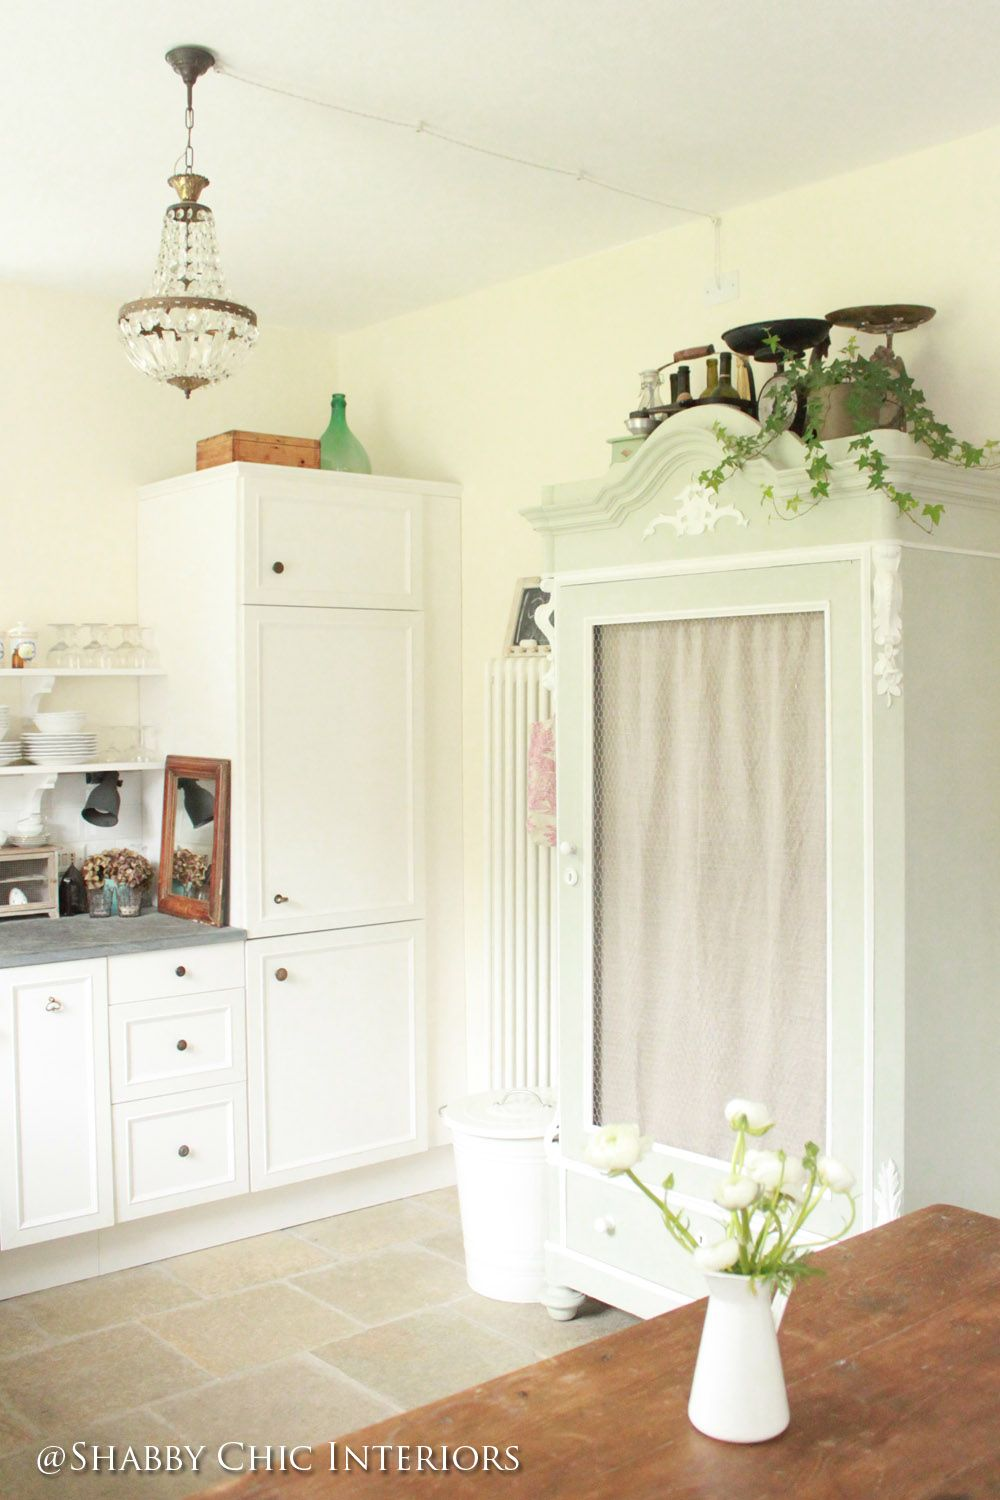 Cucine Country Chic Ikea.Shabby Chic Interiors Restyling Di Una Cucina Ikea Dream Kitchen